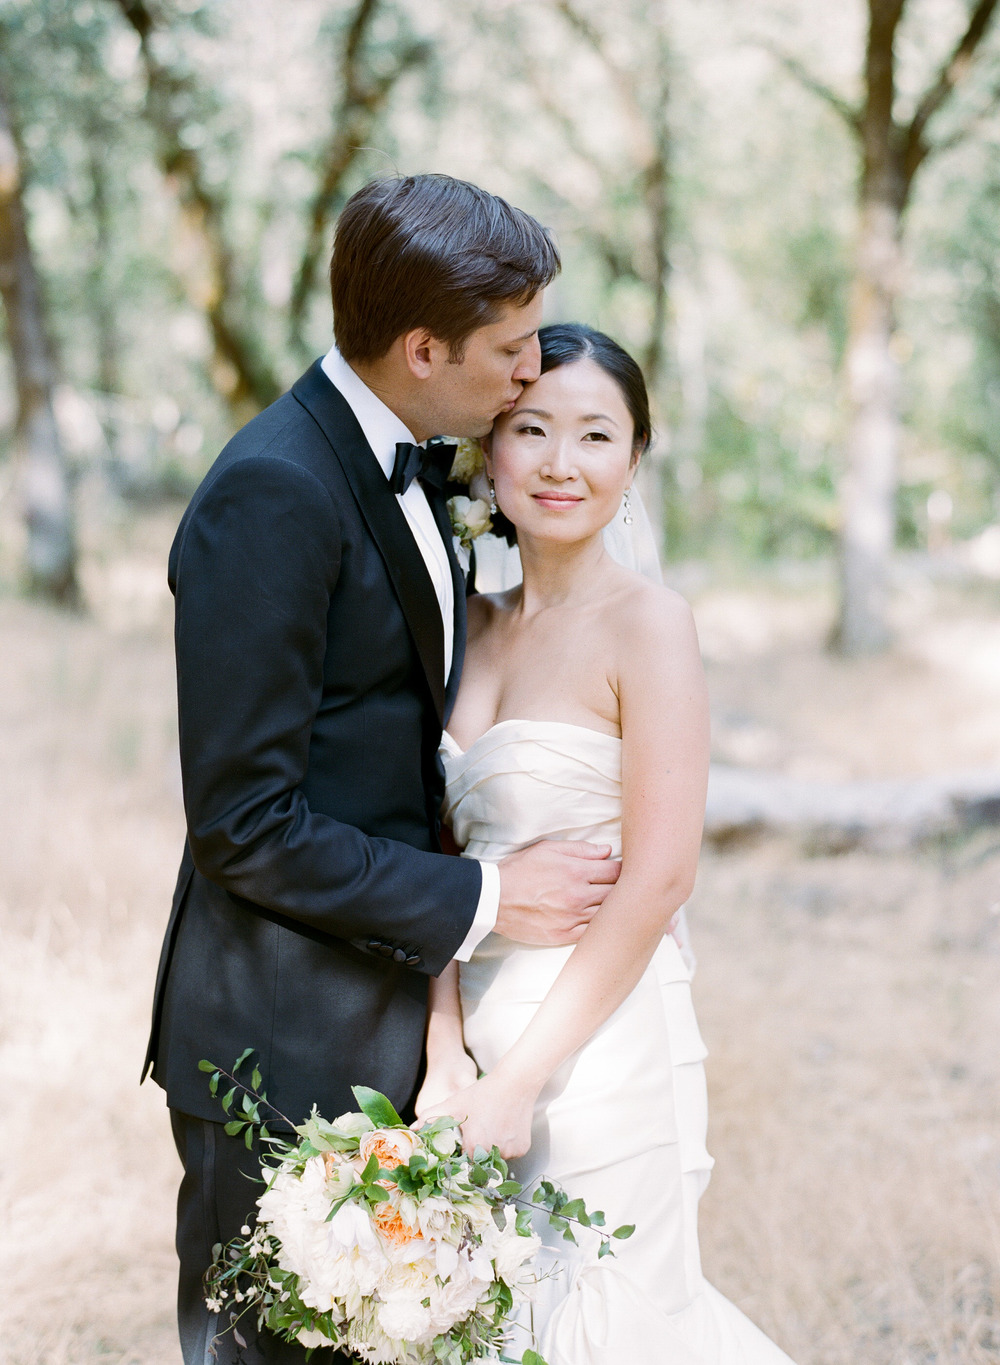 Newly married bliss - Peter kisses his new wife as the pair stand together for a couple shoot in the woods of Napa Valley; photo by Sylvie Gil